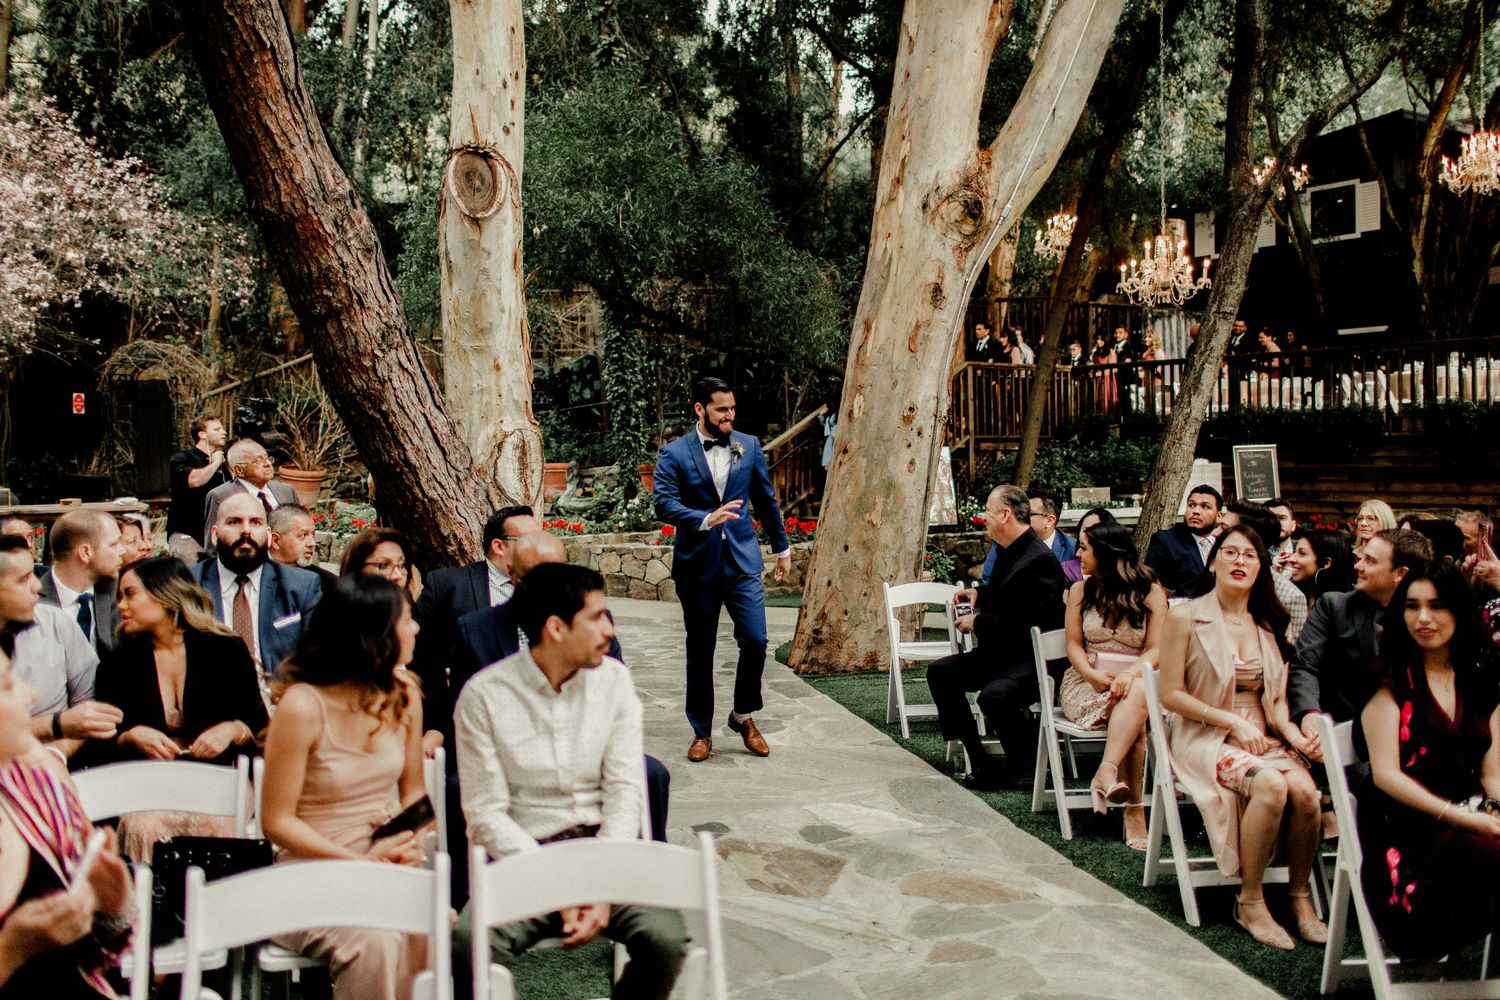 groom walking down altar at wedding ceremony calamigos ranch malibu